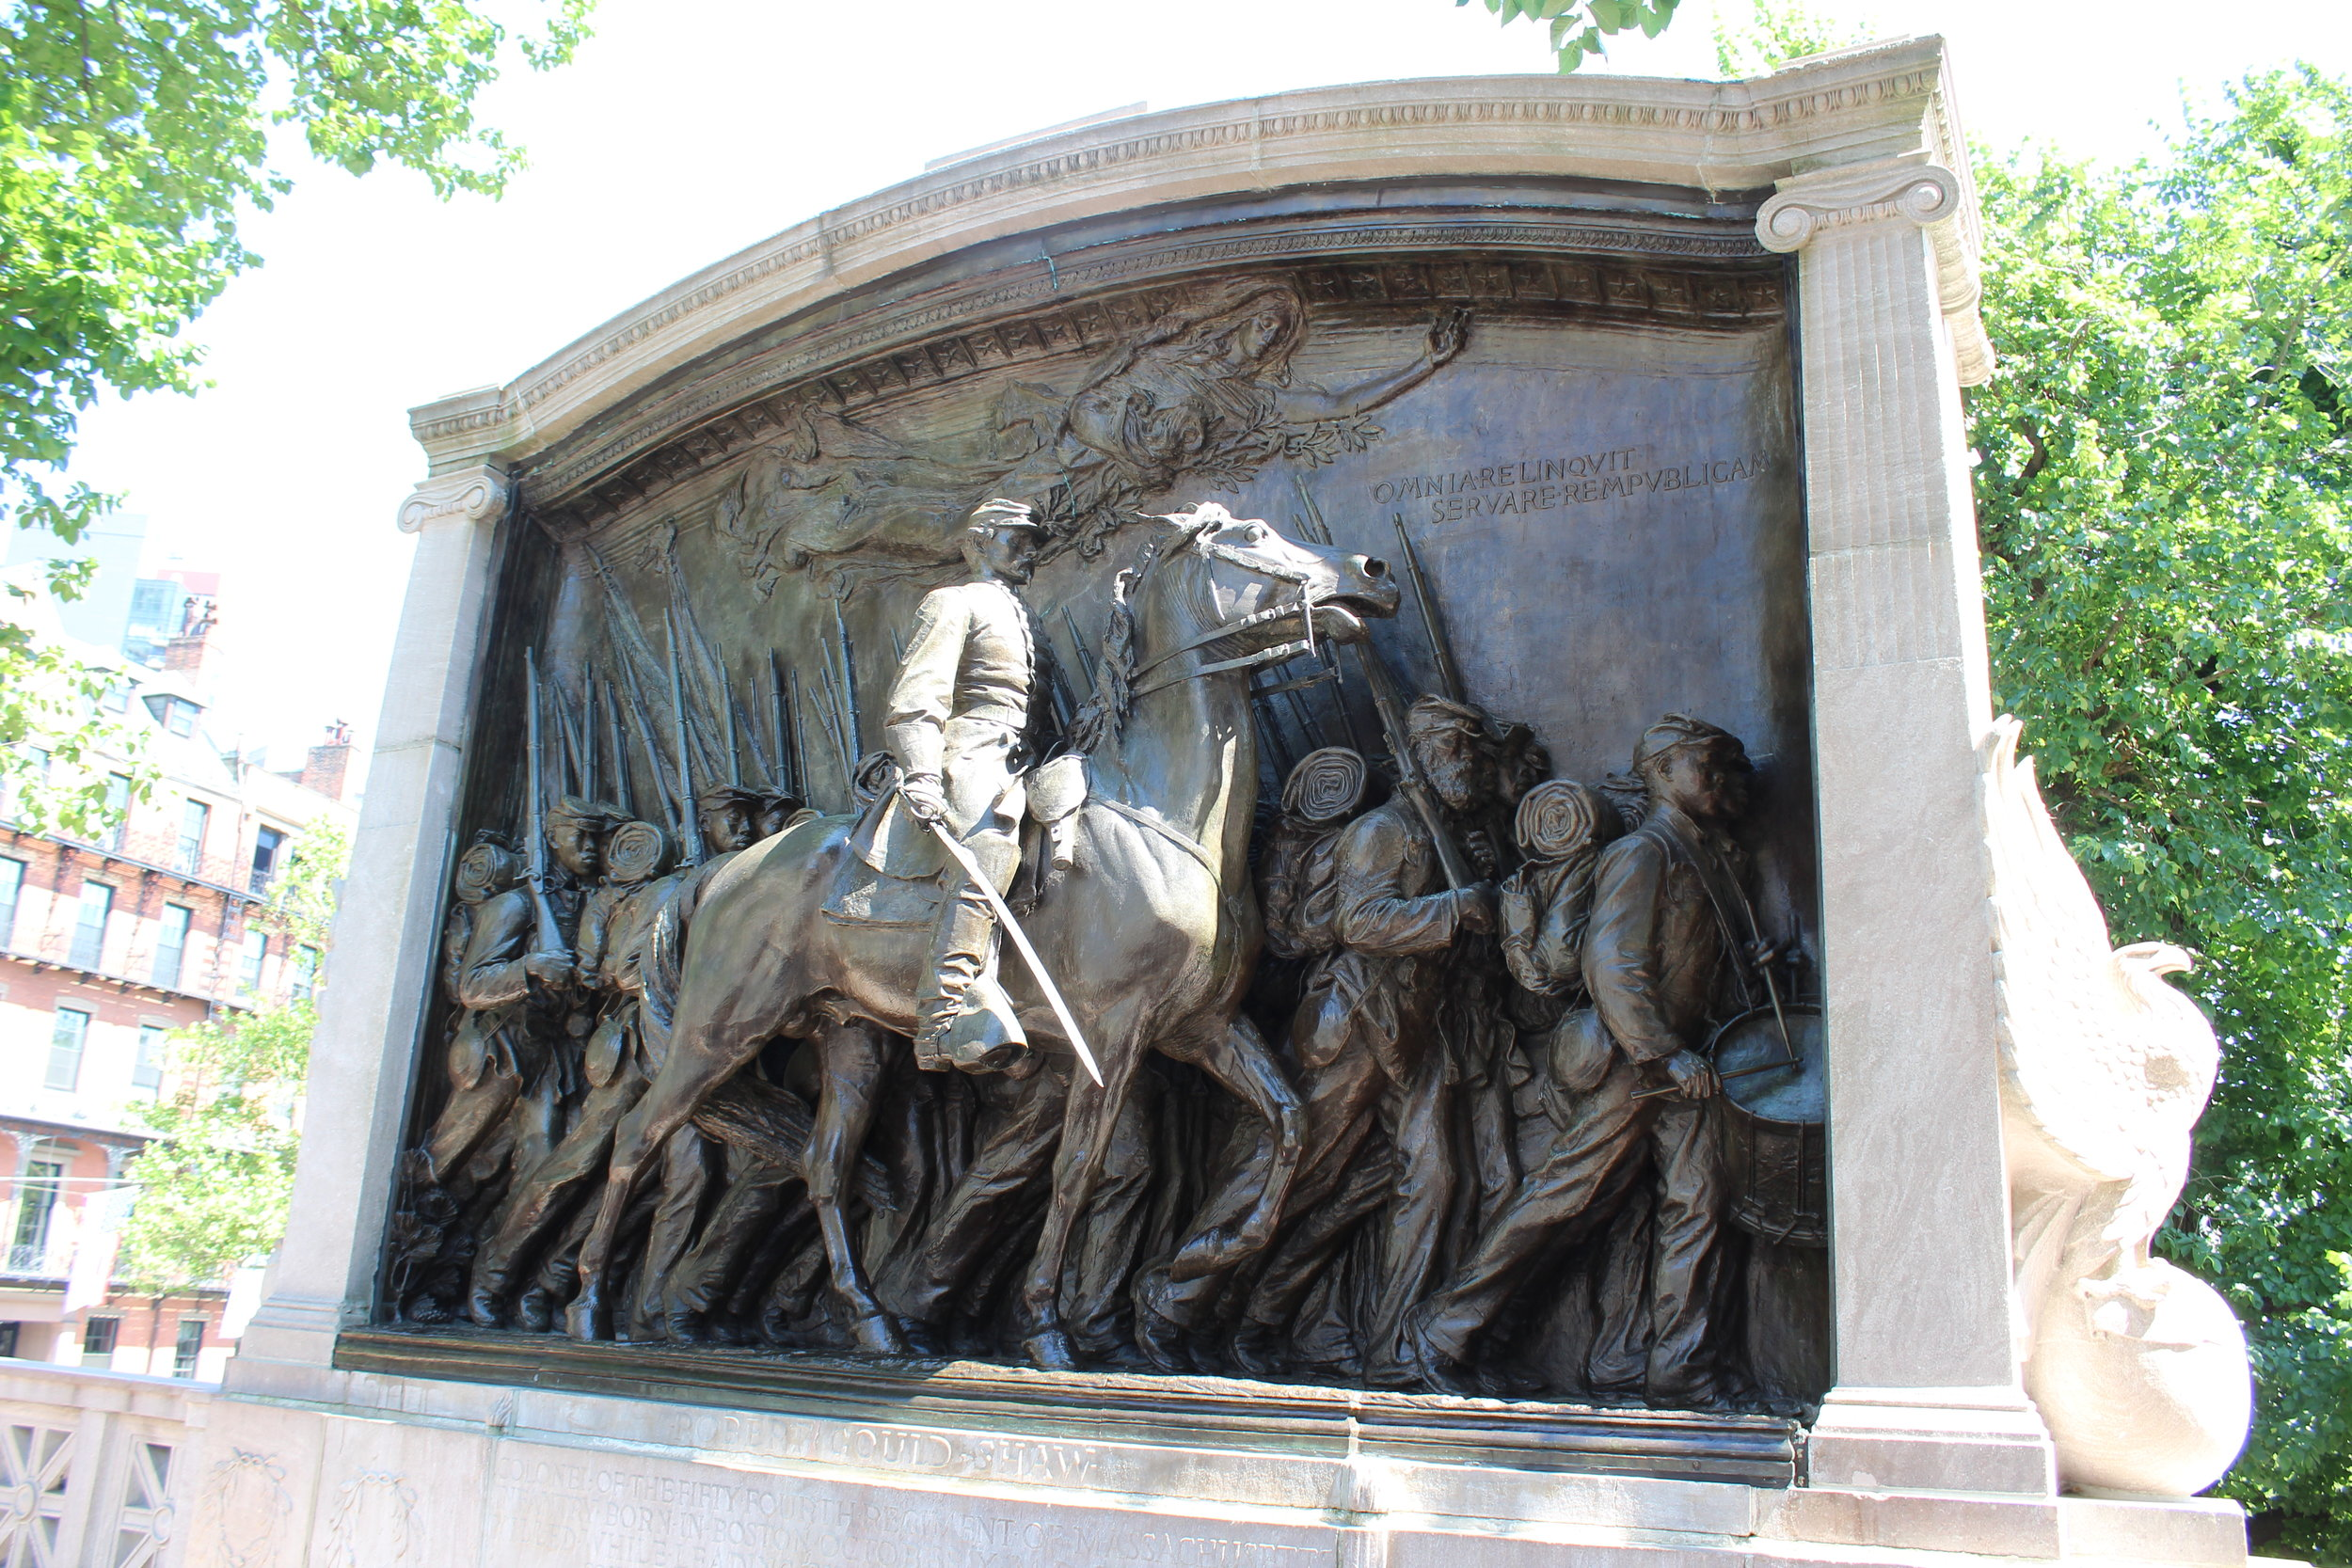 Shaw and Mass. 54th Regiment Memorial